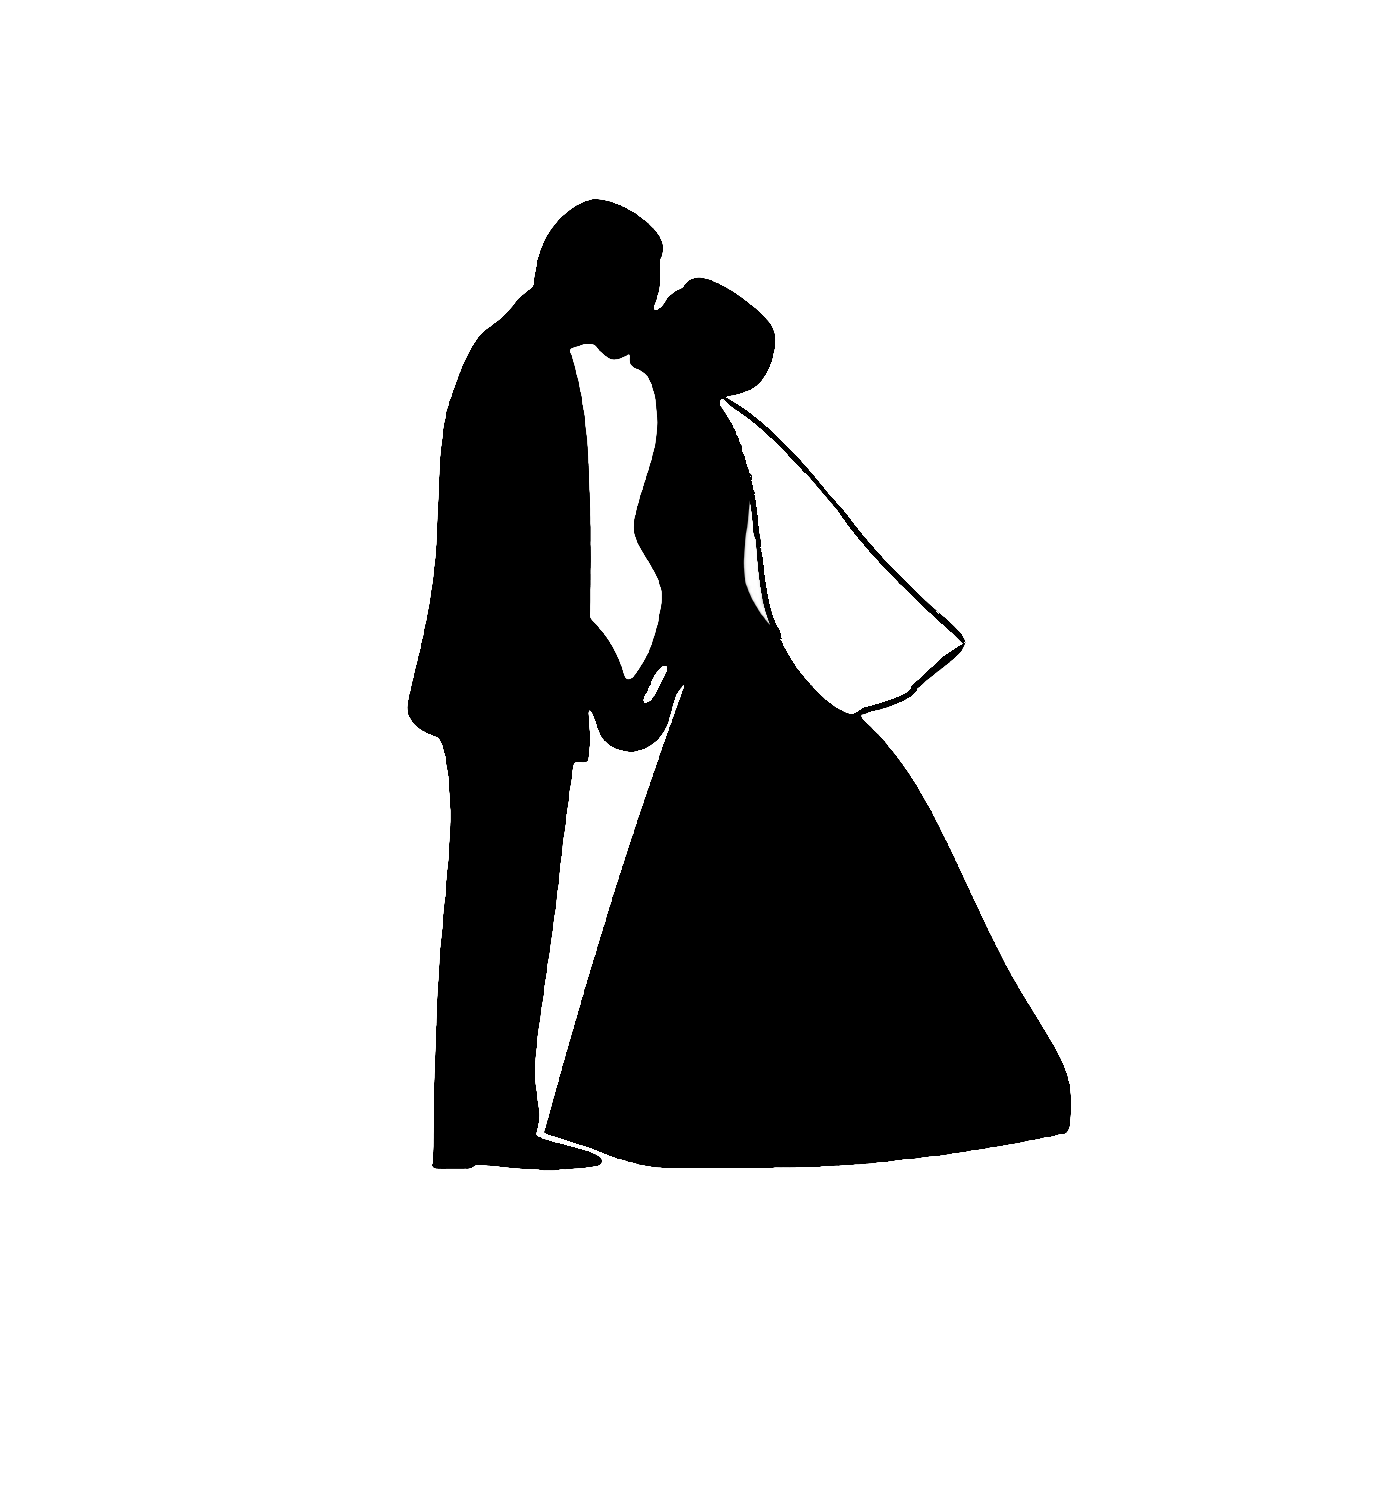 Png Wedding Black And White - Groom Clipart Black And White Clipart Panda Free Clipart Images